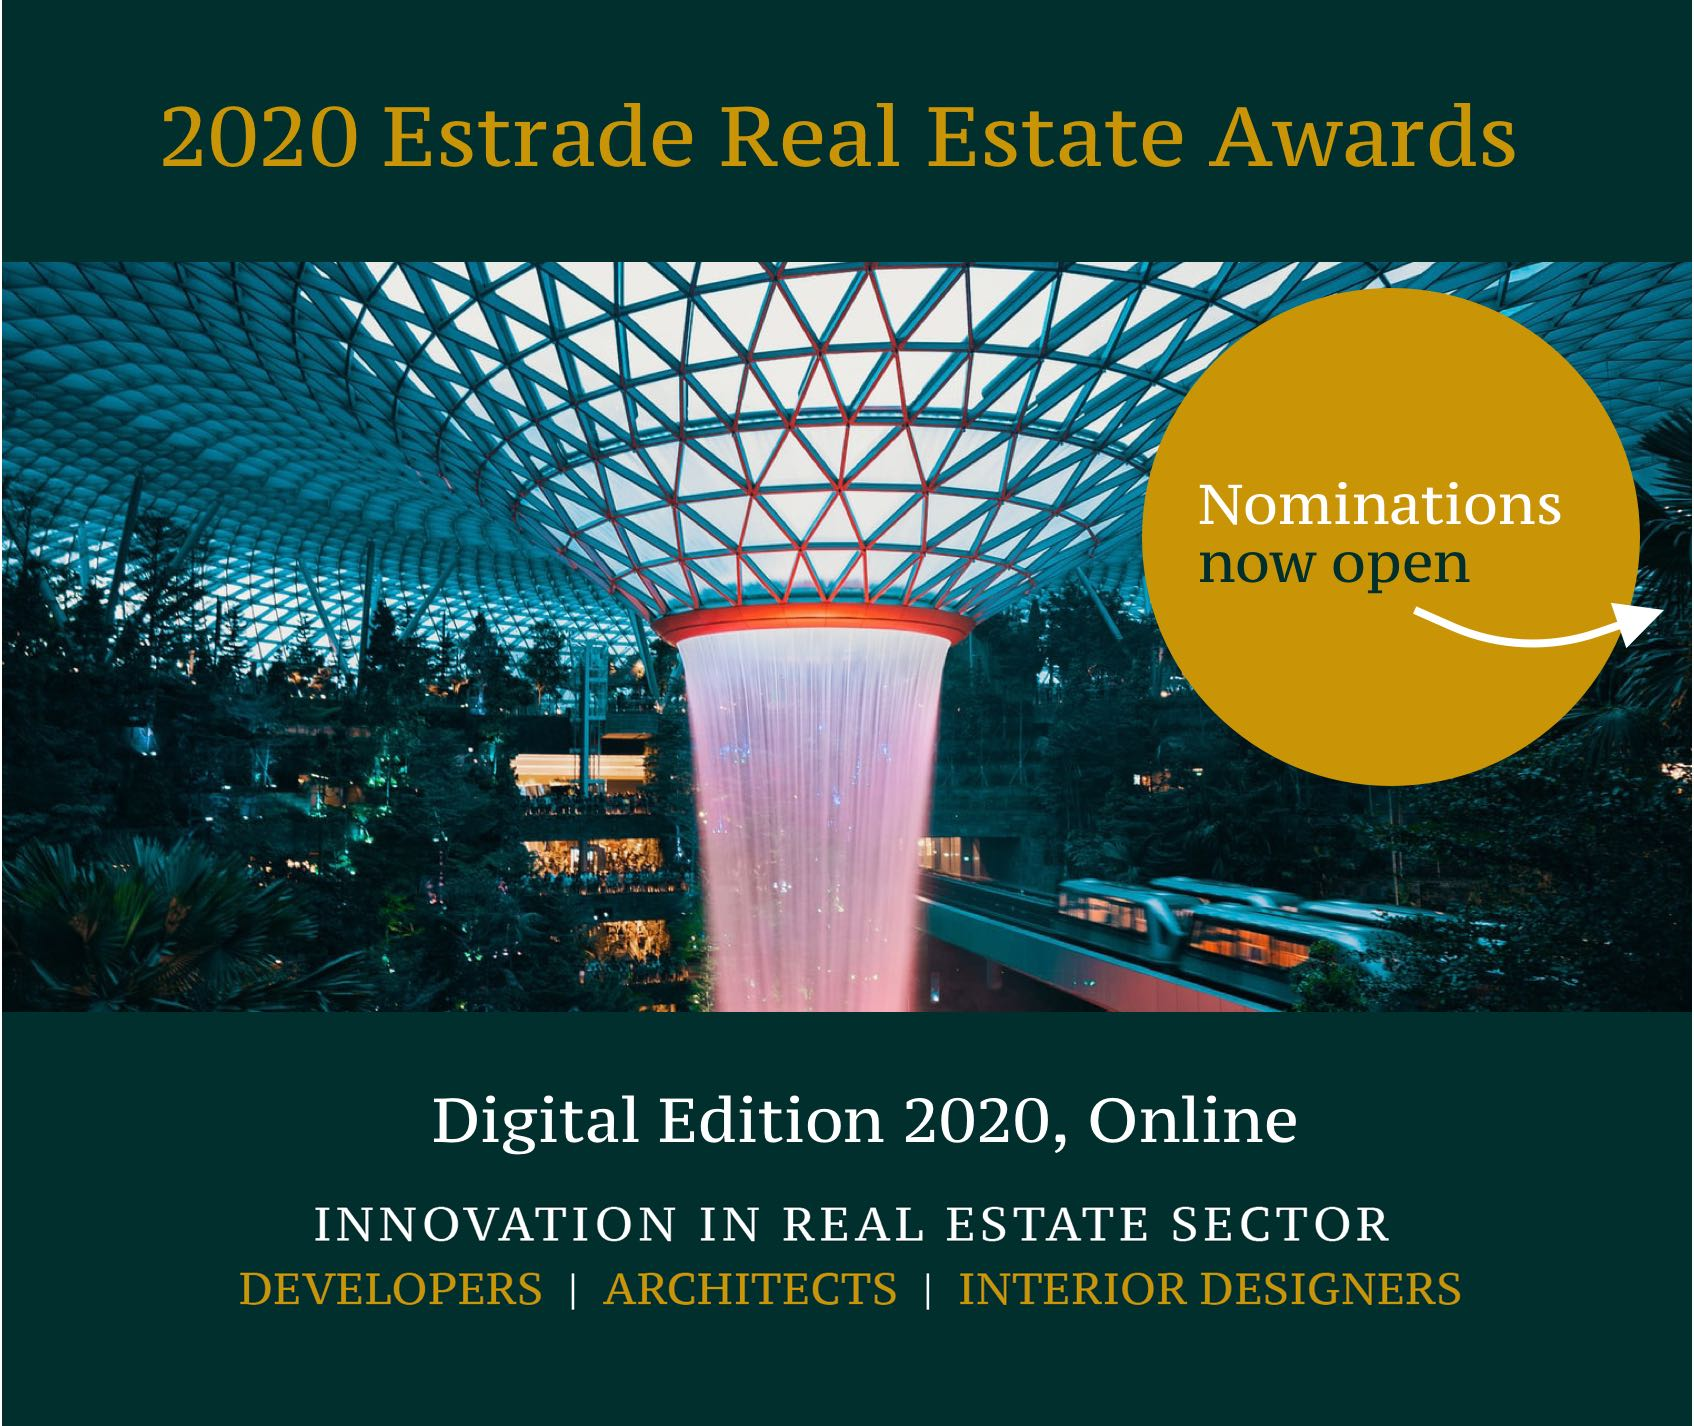 2020 Estrade Real Estate Awards - Digital Edition